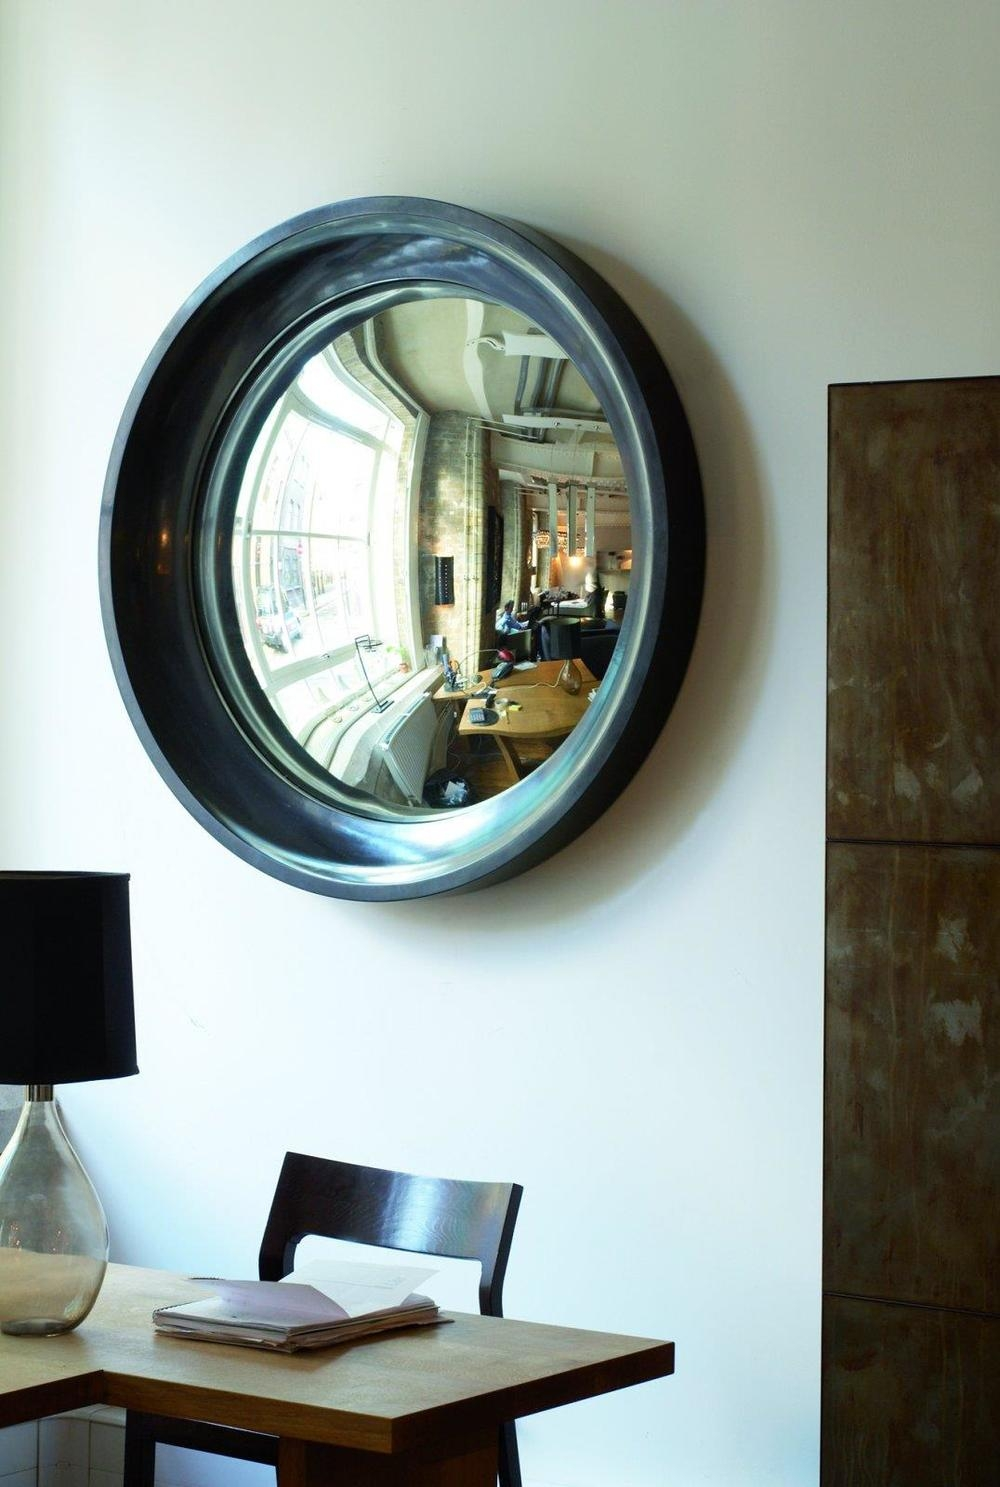 15 Interiors Turned Abstract Wall Art A Convex Mirror Designed For Convex Wall Mirrors (View 15 of 15)